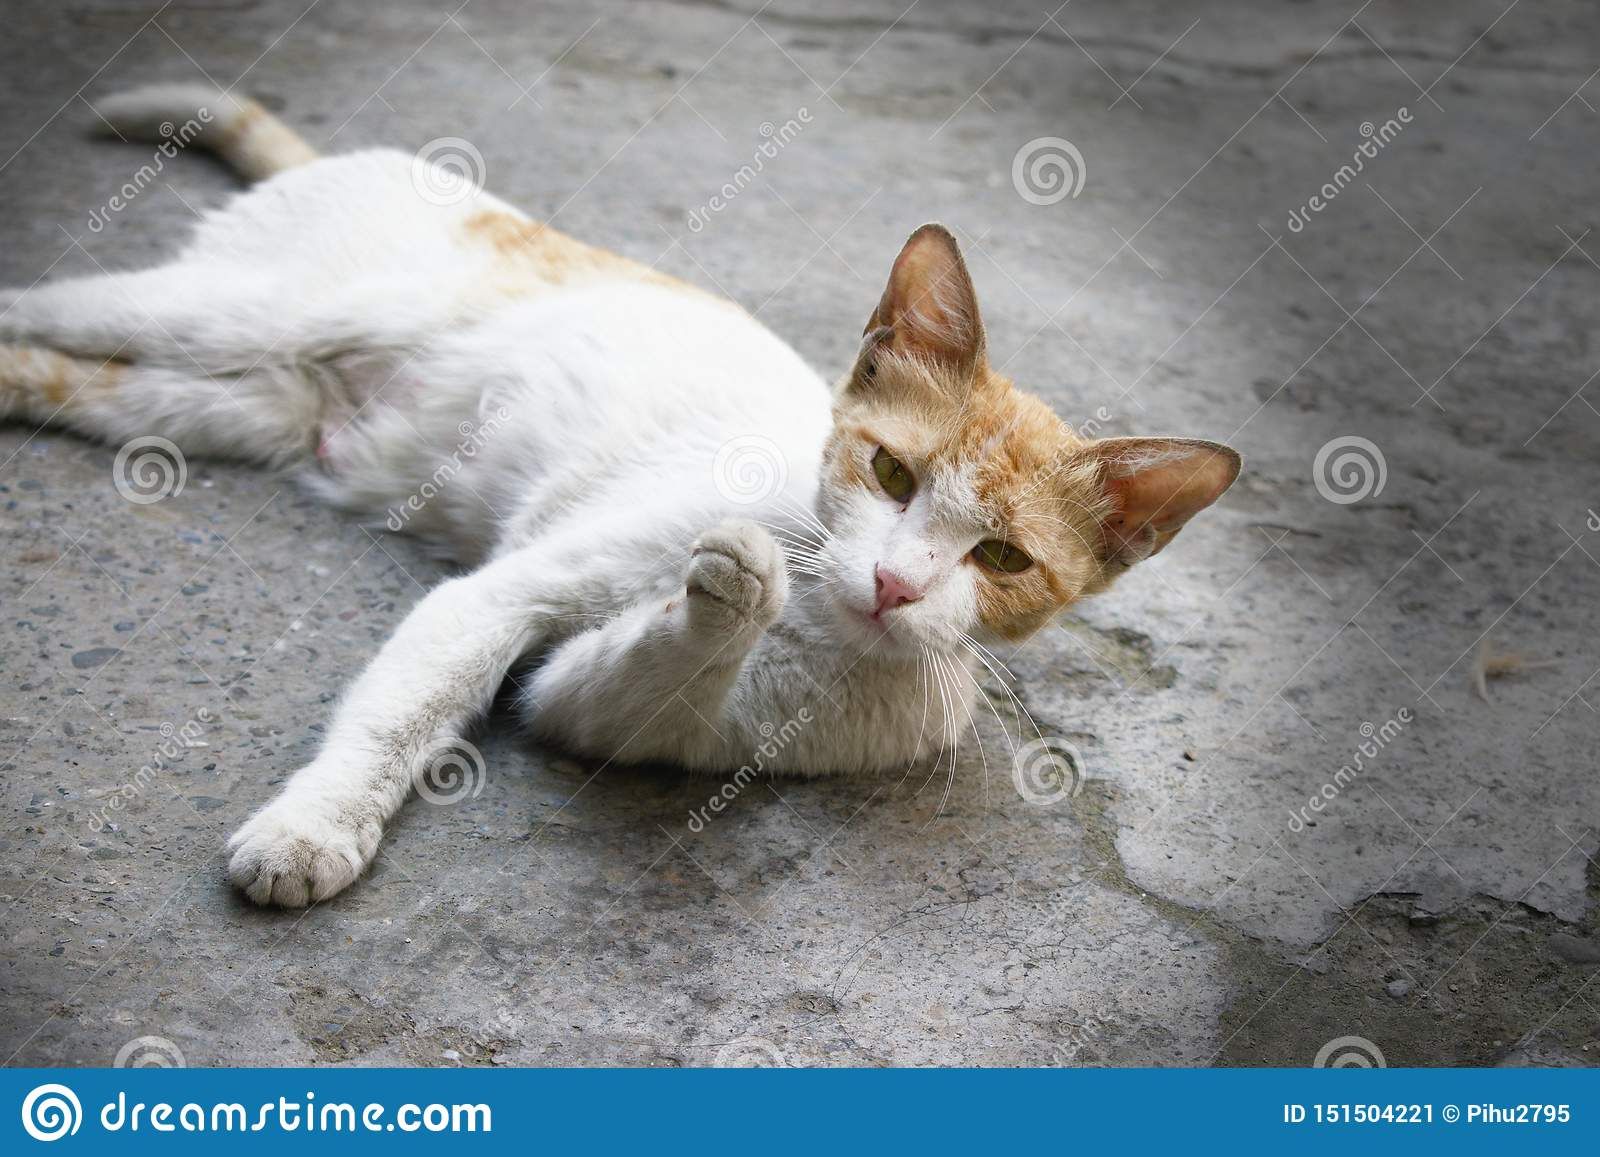 Cute white cat with an interesting and curious expression ans